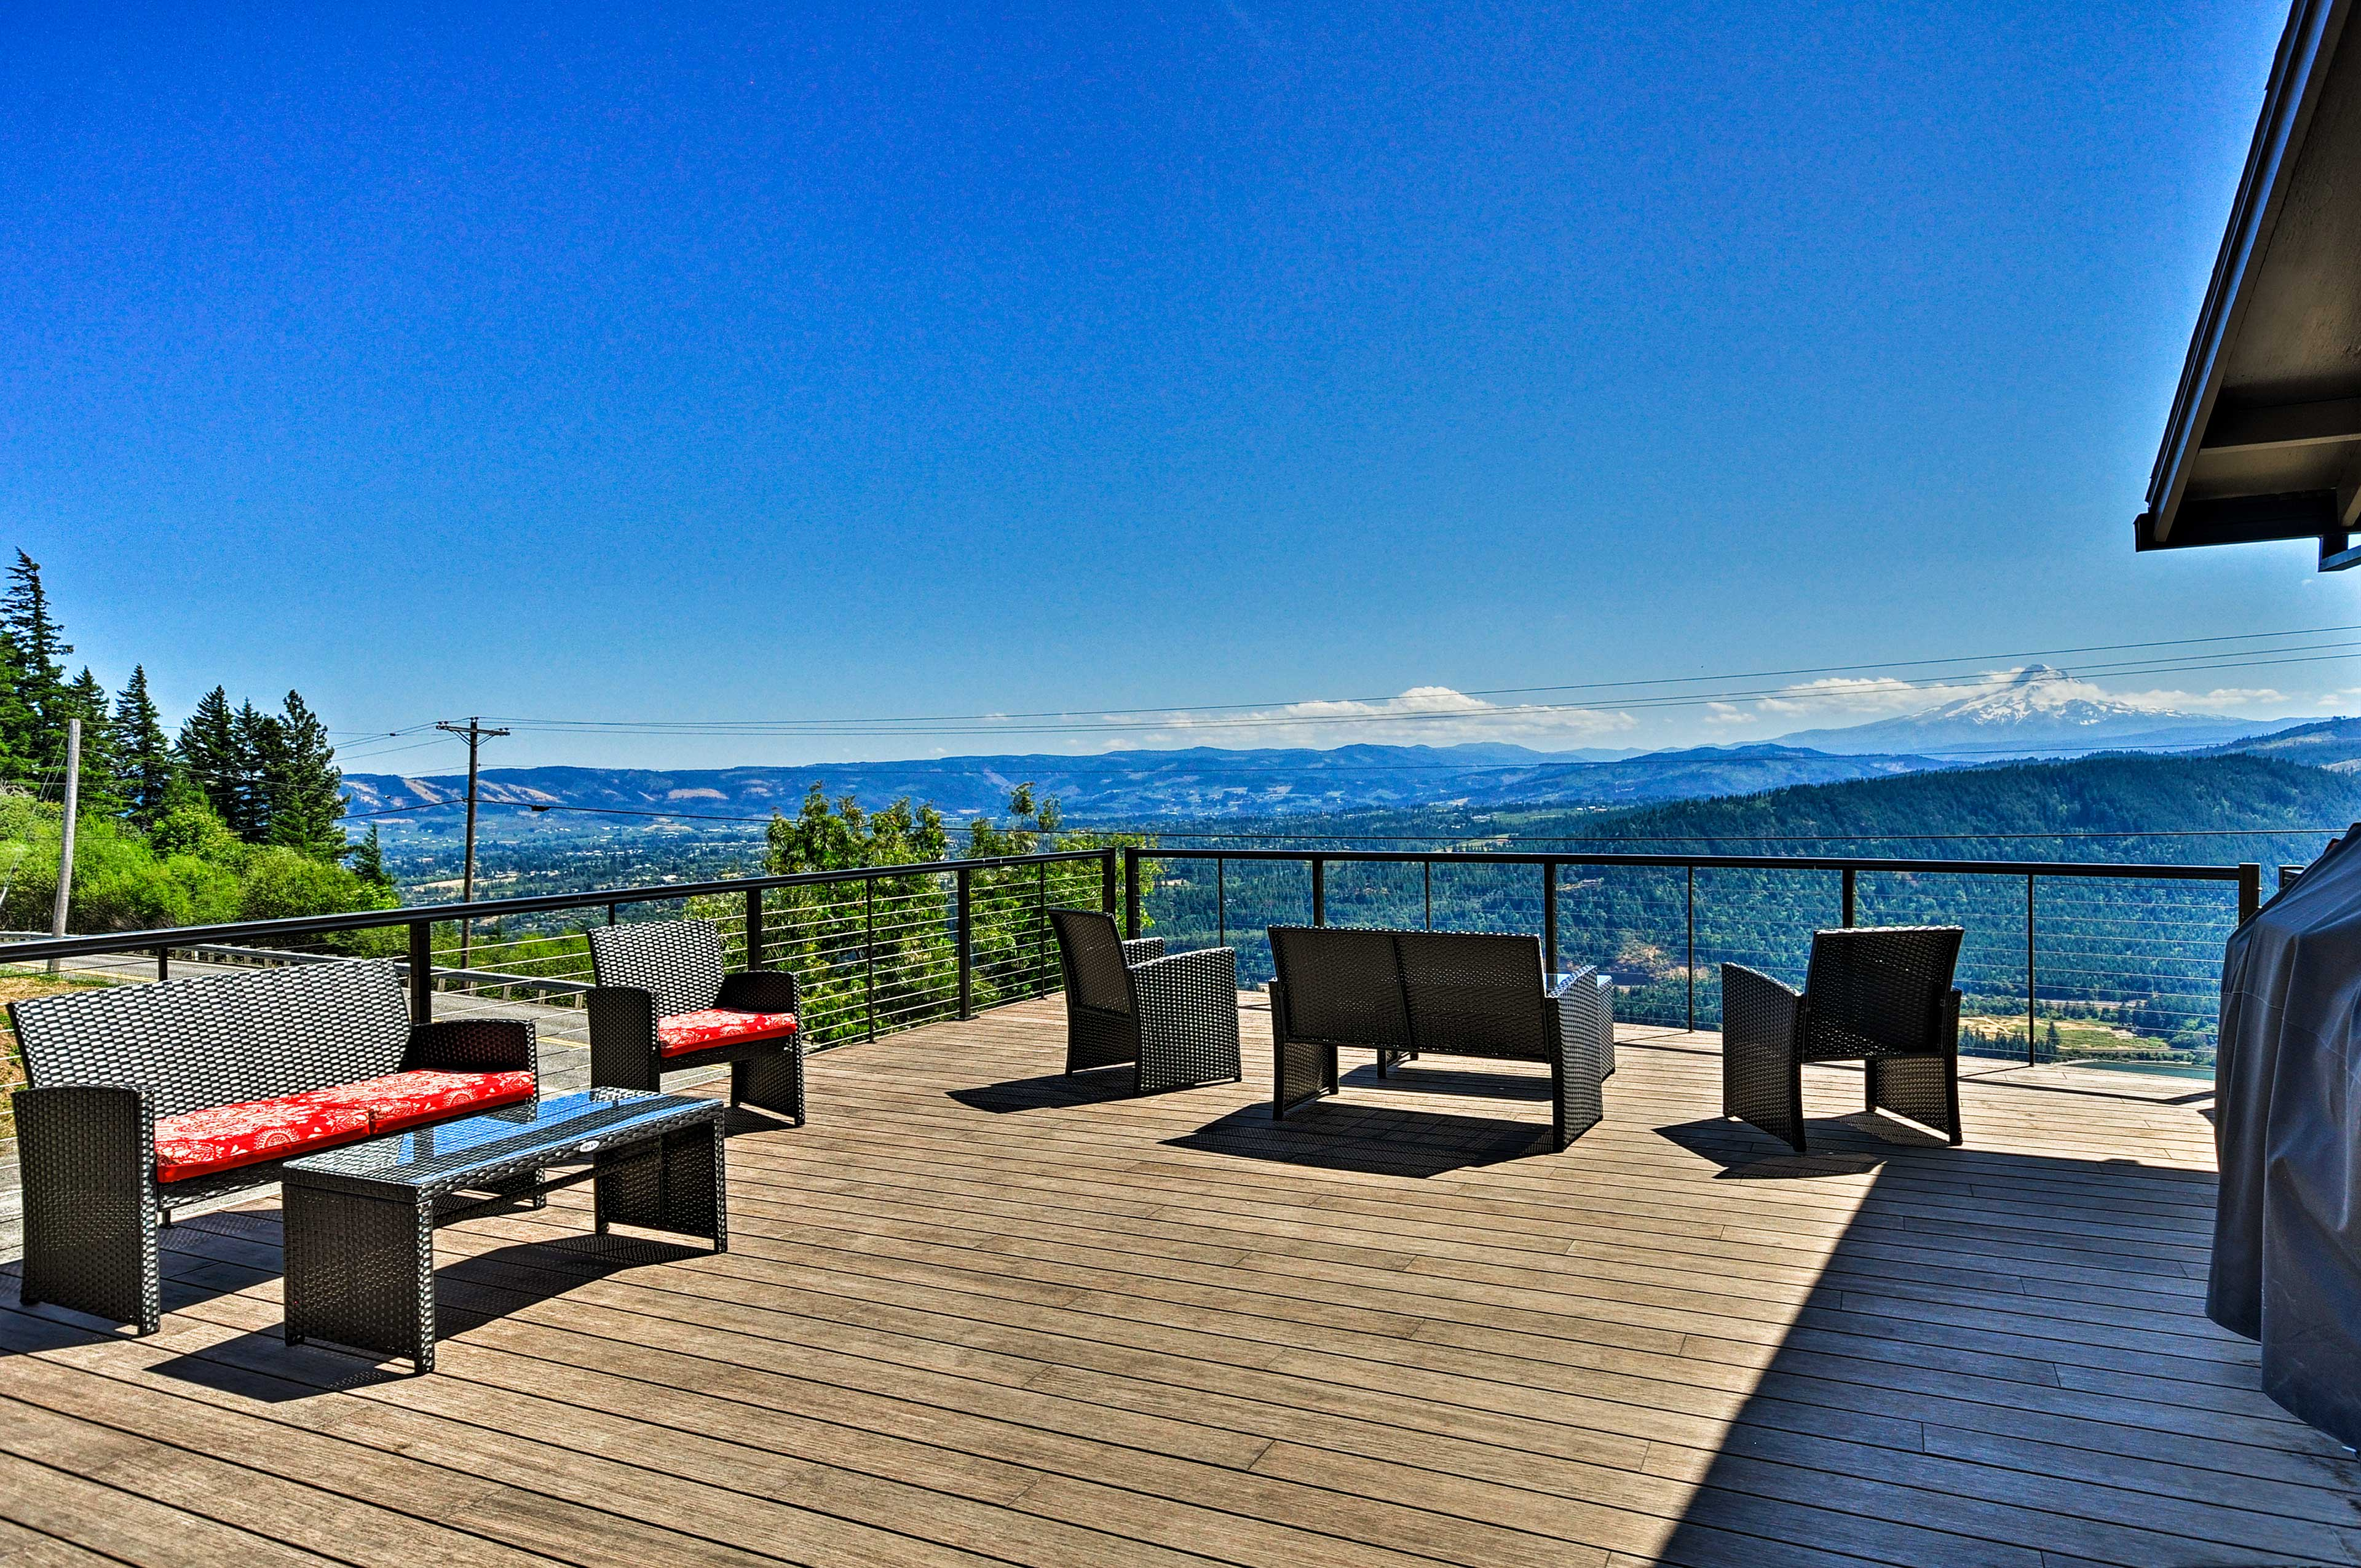 Head out to the spacious deck to enjoy the views.